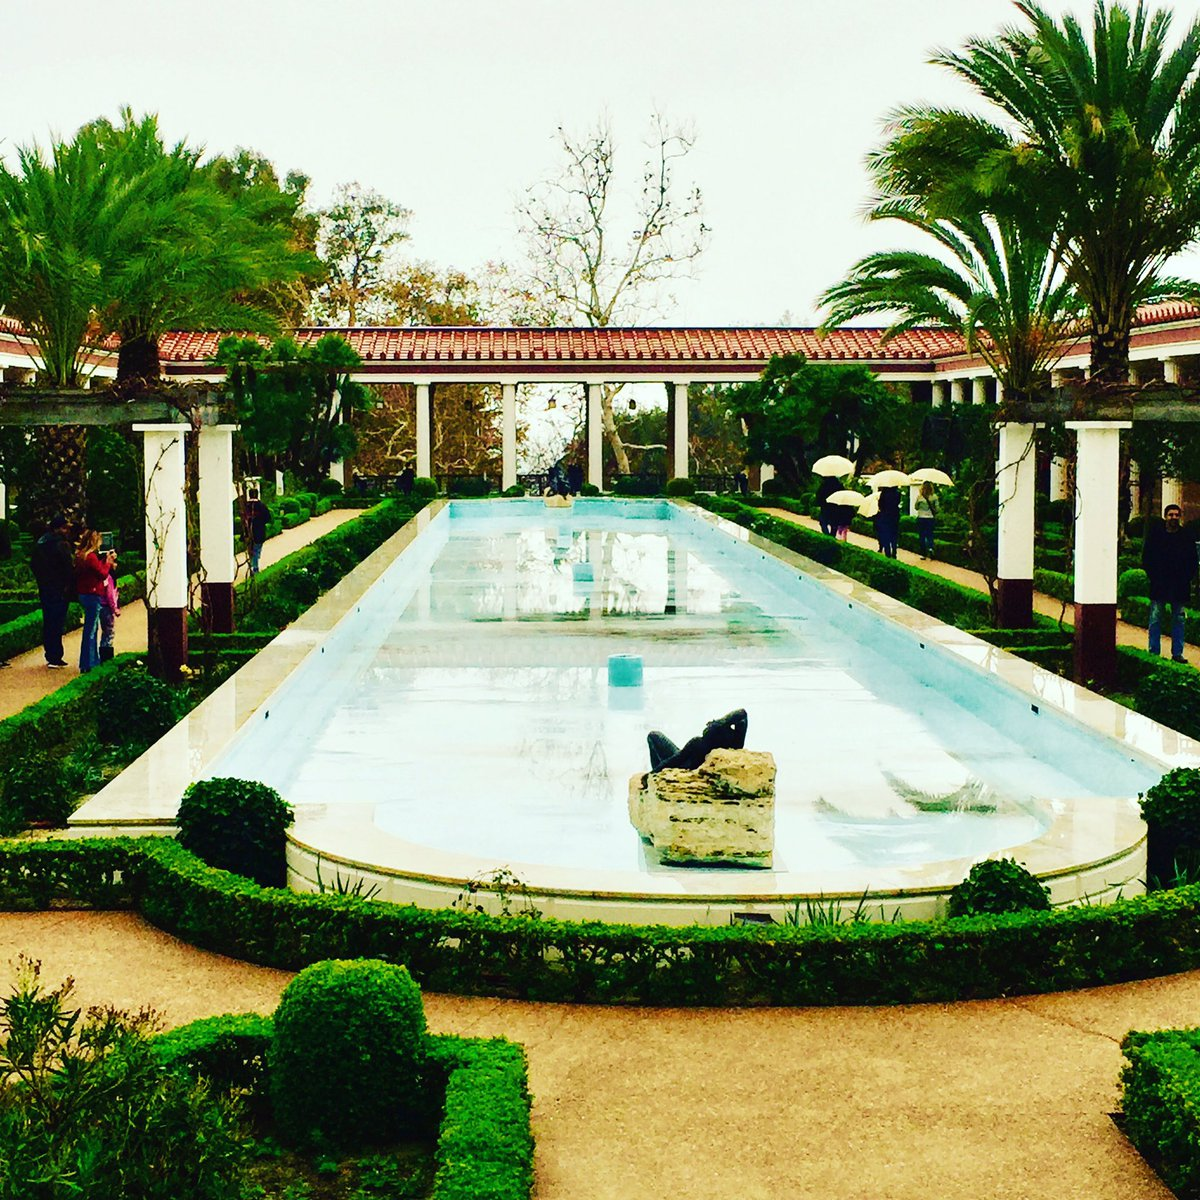 A gorgeous New Year's Eve in Malibu at the @GettyMuseum Villa. https://t.co/b67d6jidGY